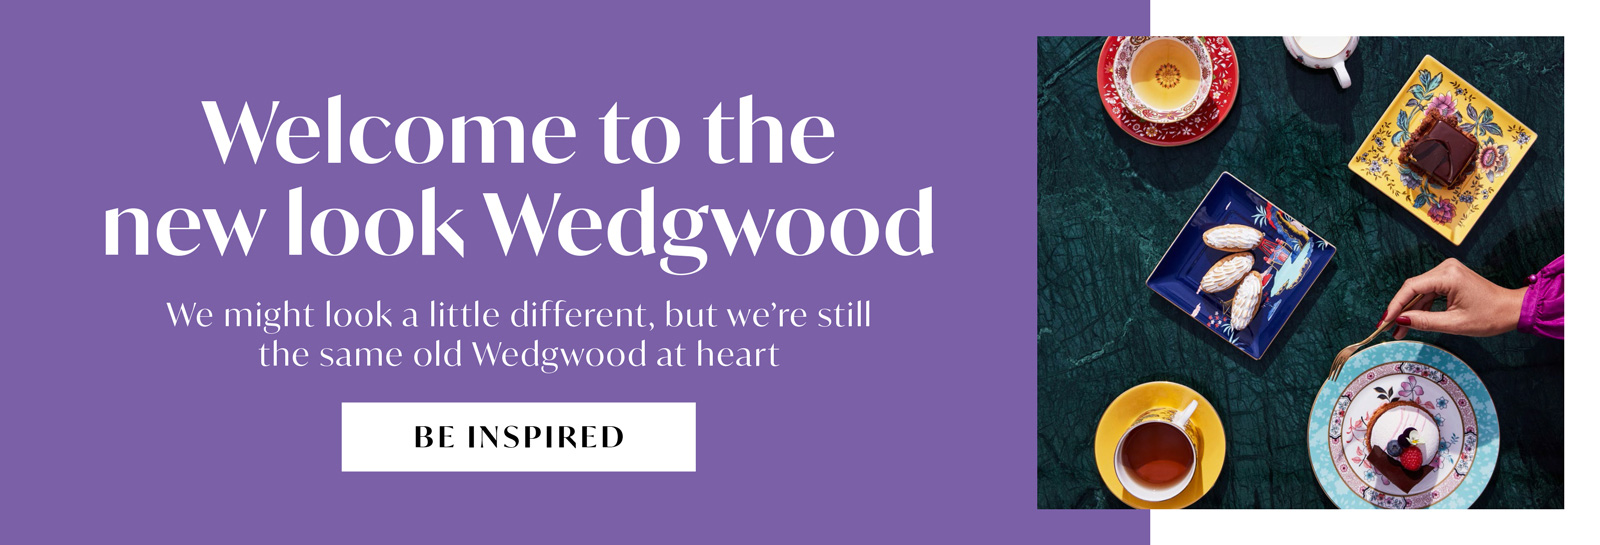 Welcome to the new look wedgwood